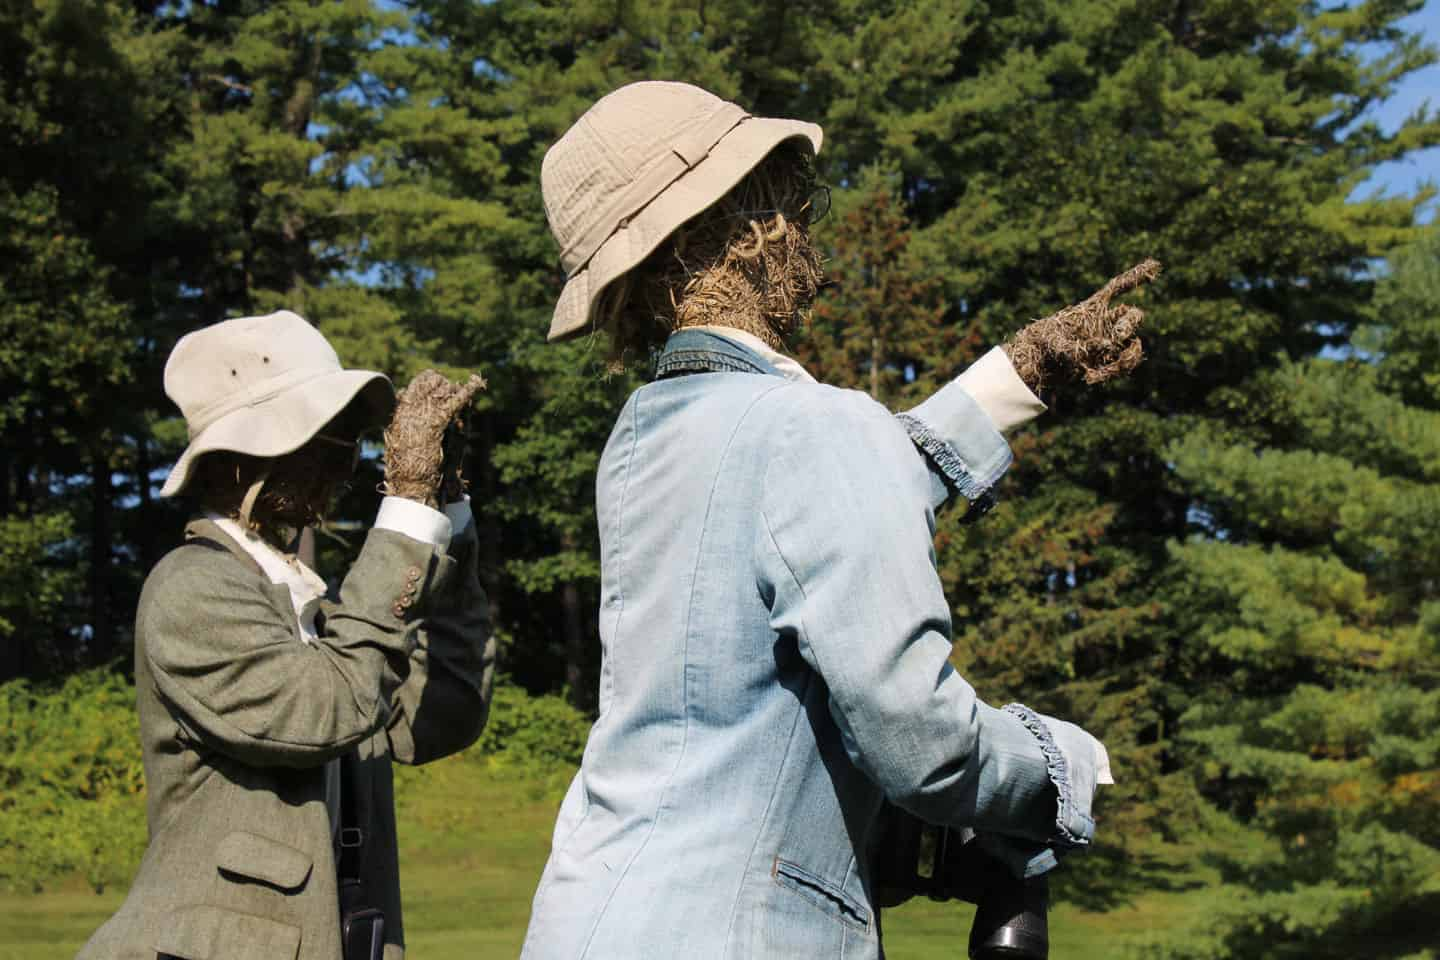 Bird Watchers look for migrating visitors (hint) on the grounds of a senior retirement community close to Route 20 Bypass. Photo by Thom Smith